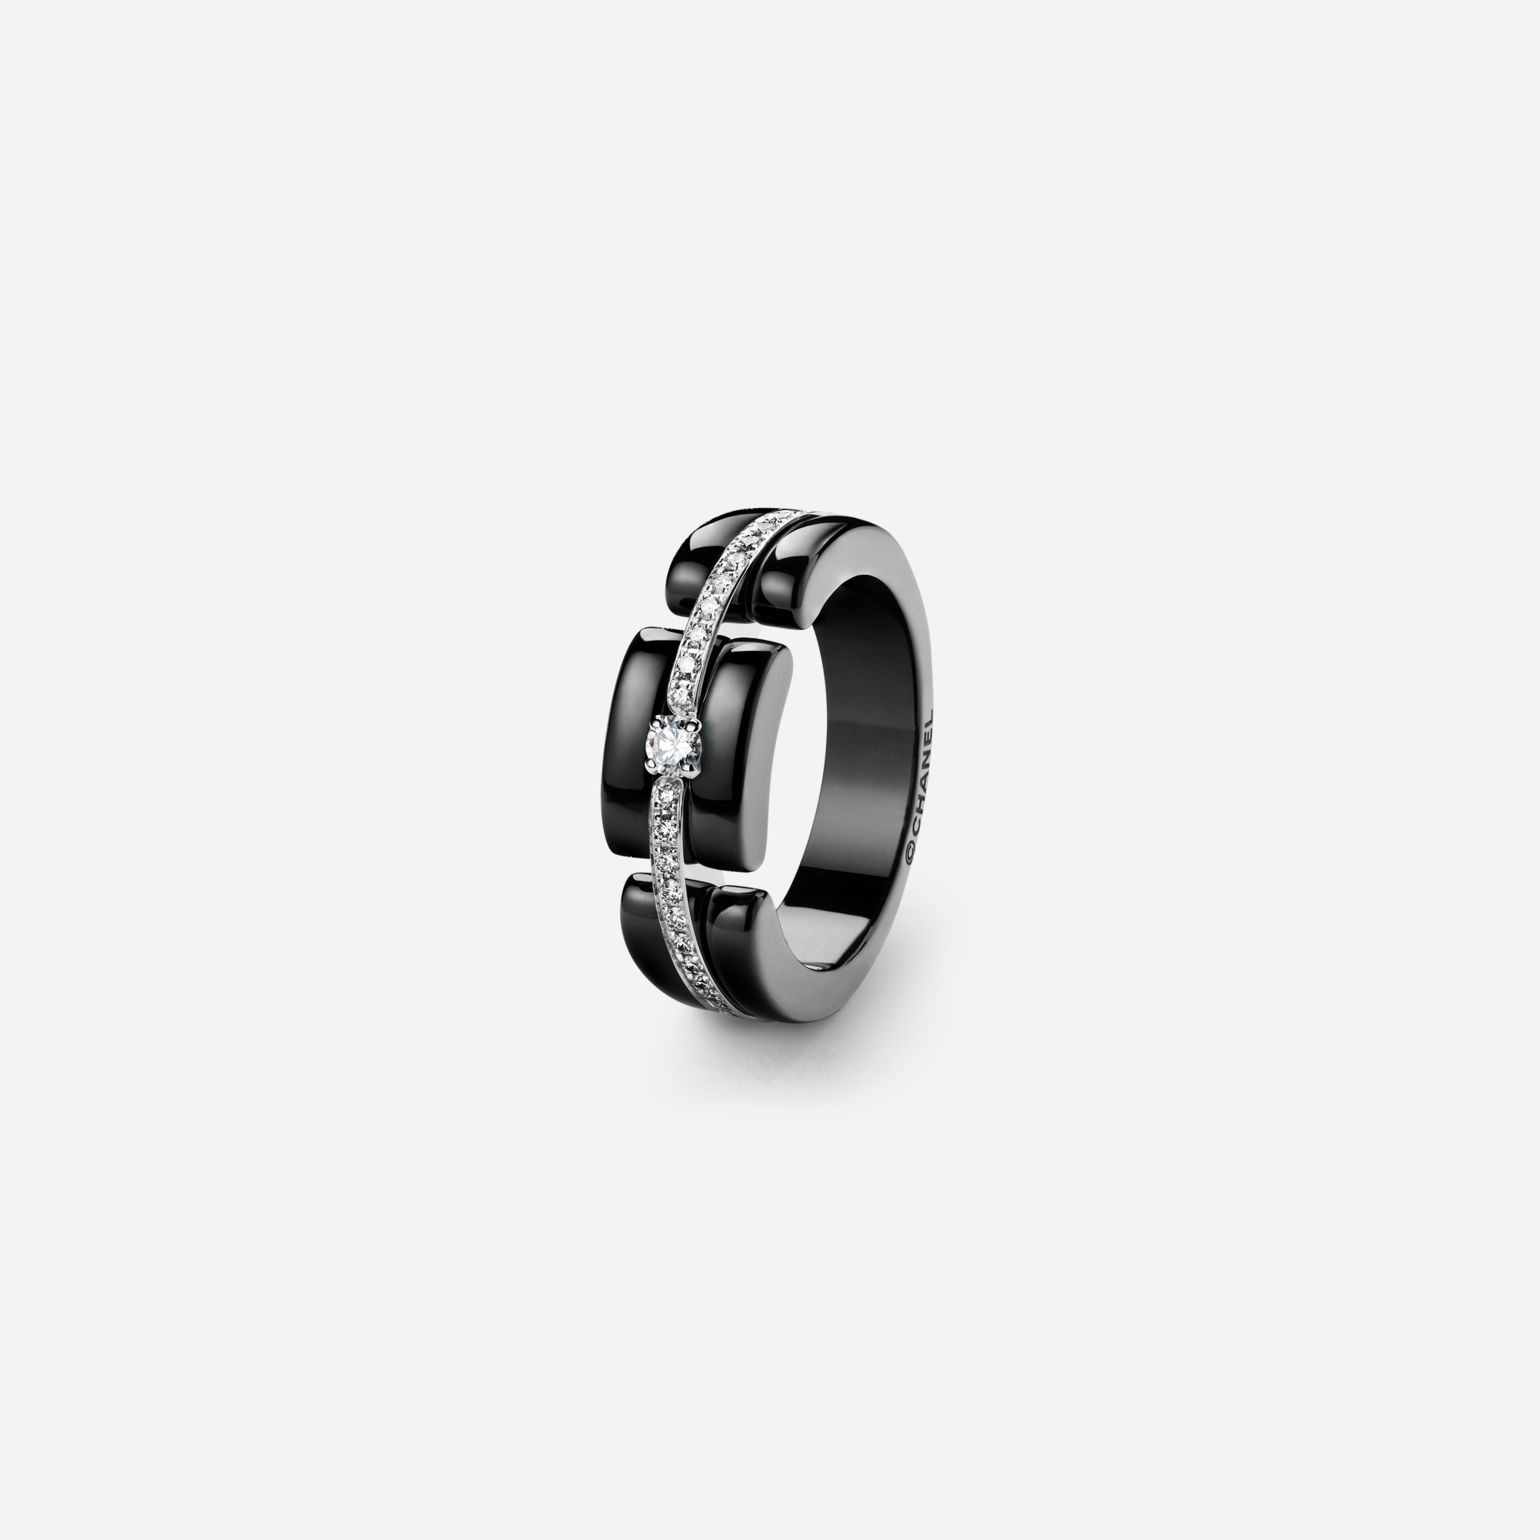 Ultra Ring Ultra ring in black ceramic, 18K white gold, diamonds and central diamond. Medium, rigid version.